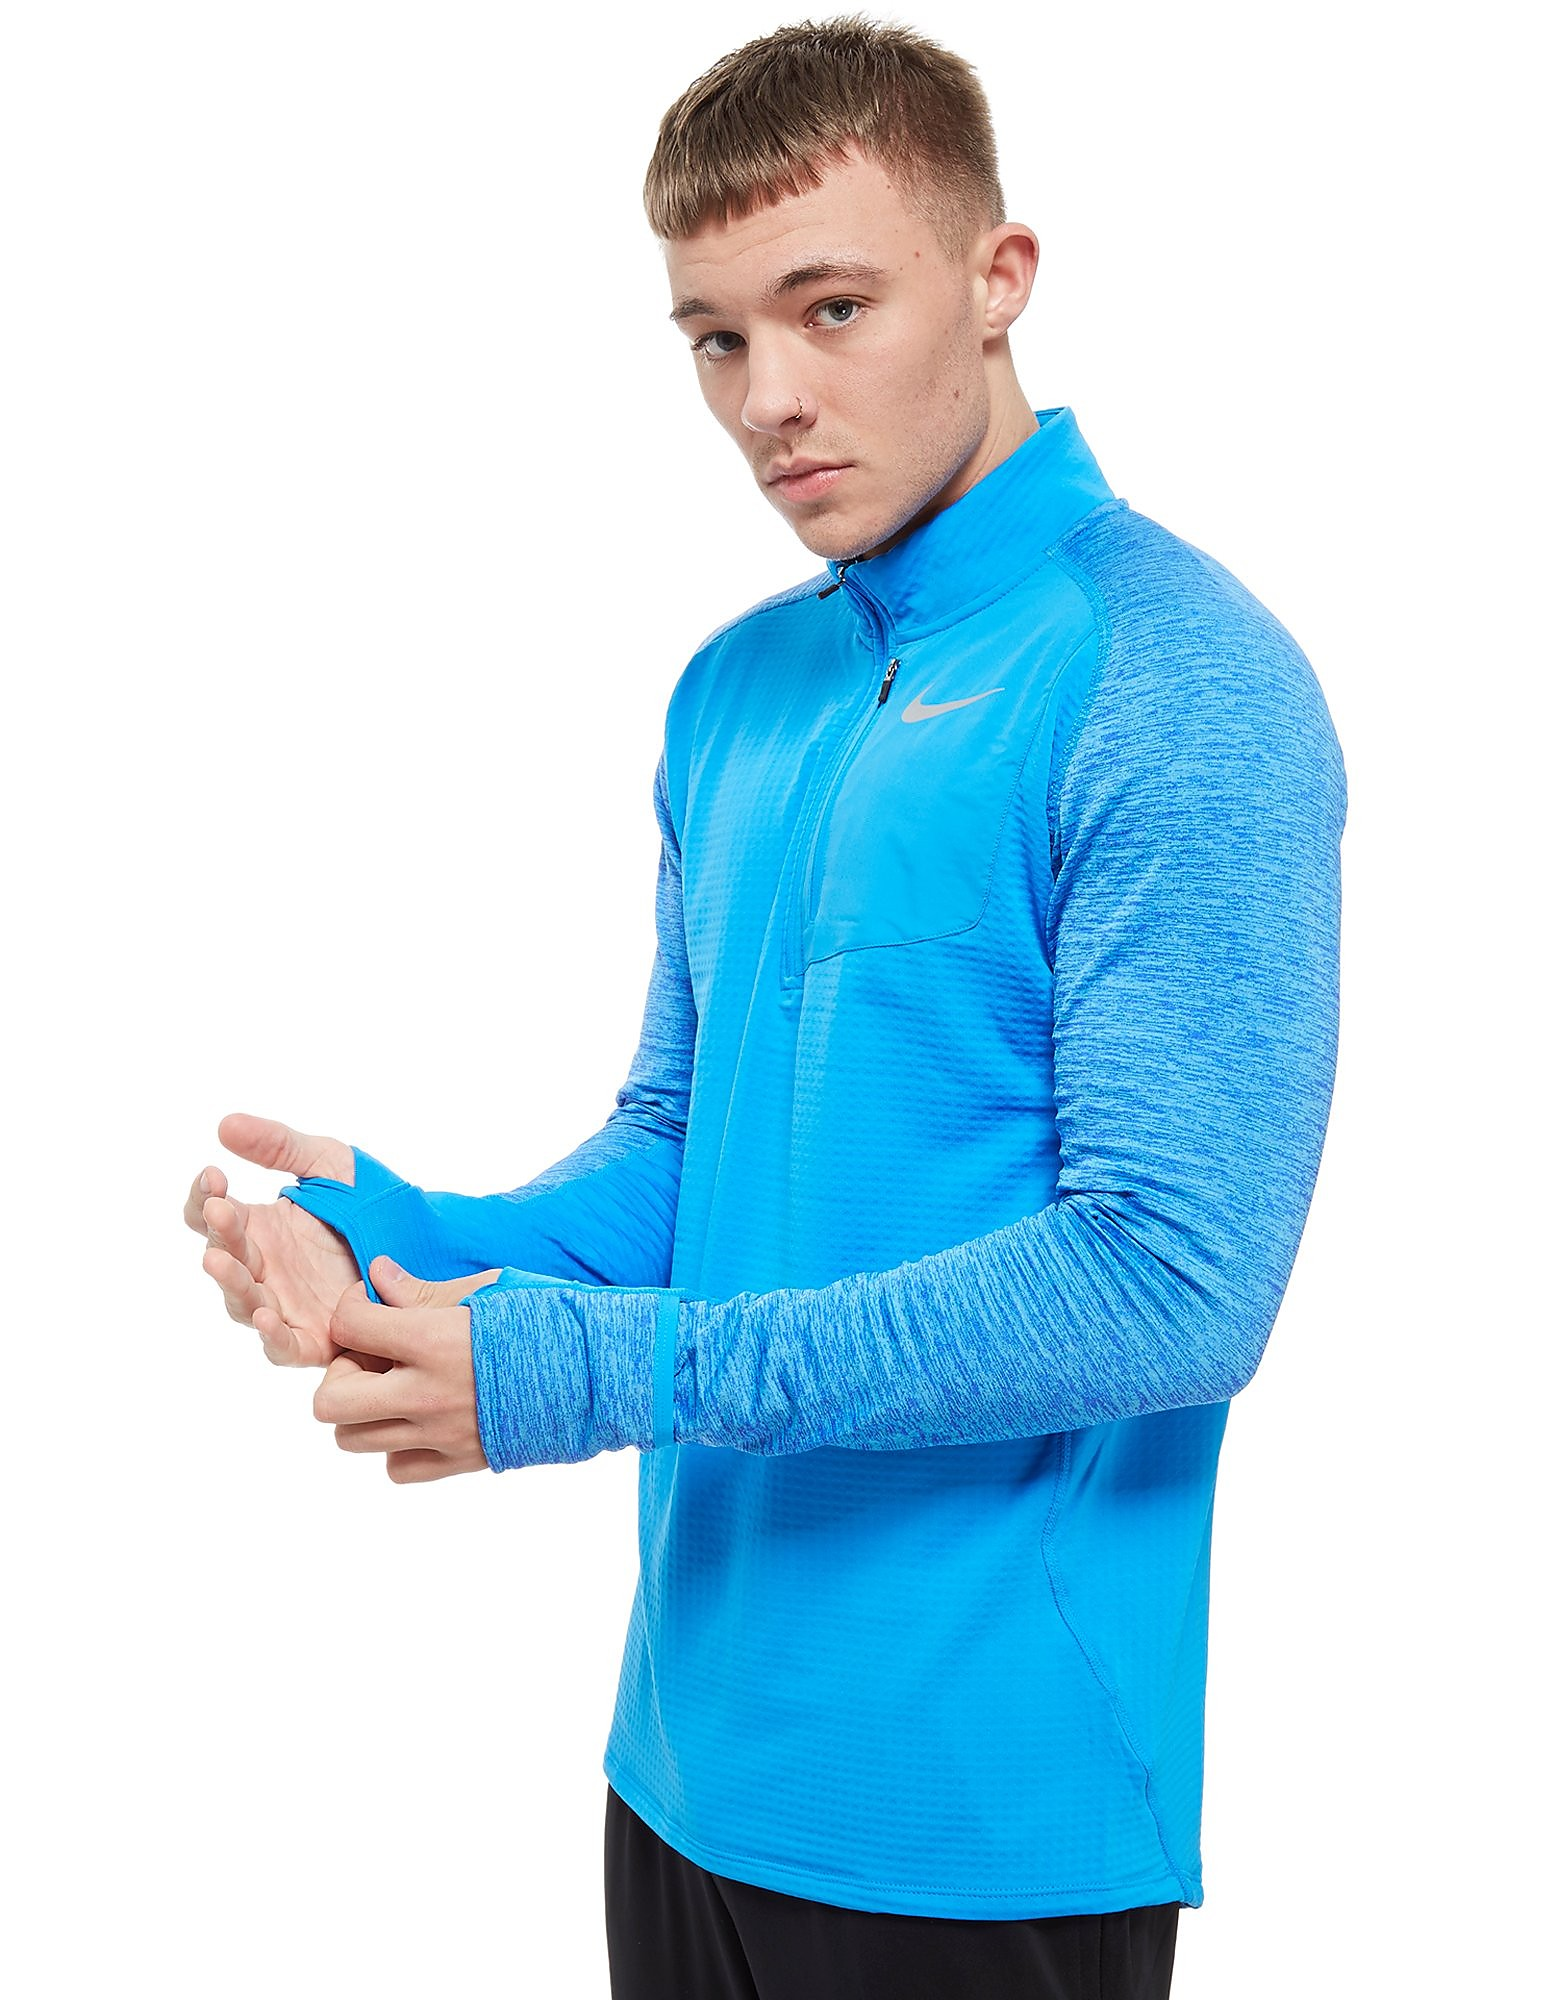 Nike Sphere Element Long Sleeve Running Top